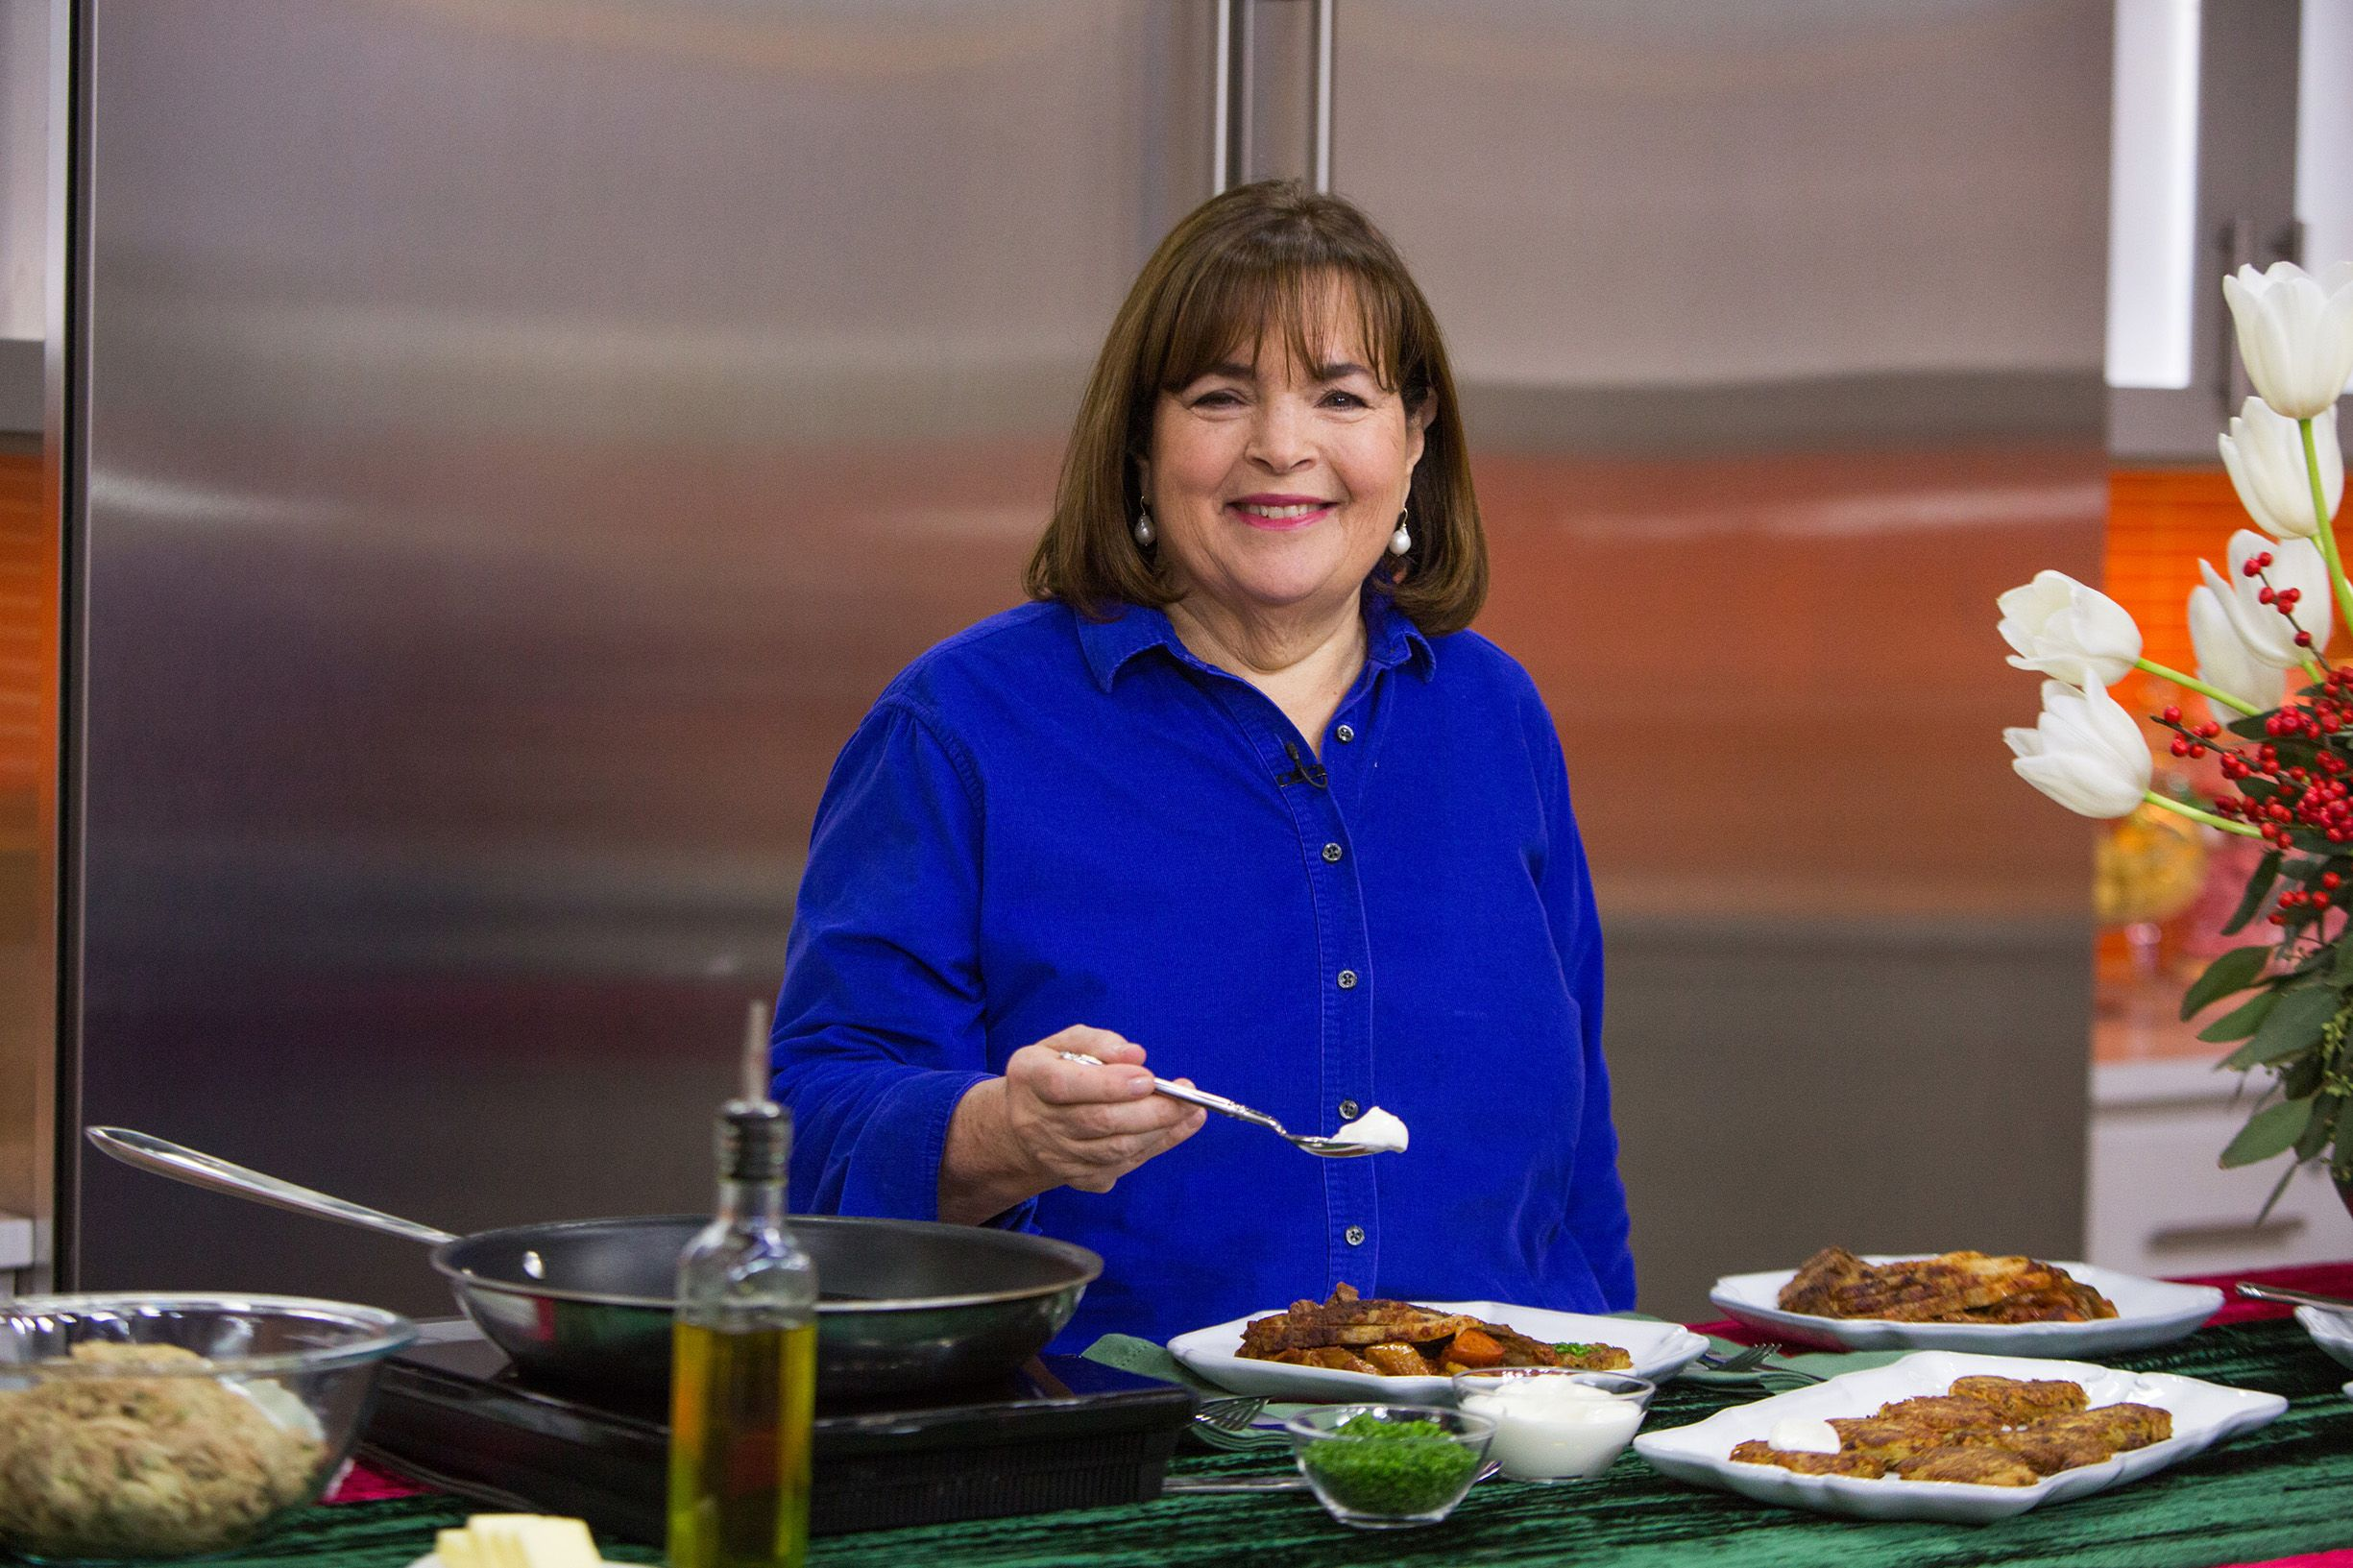 Ina Garten Barefoot Contessa Meaning Why Is Called The